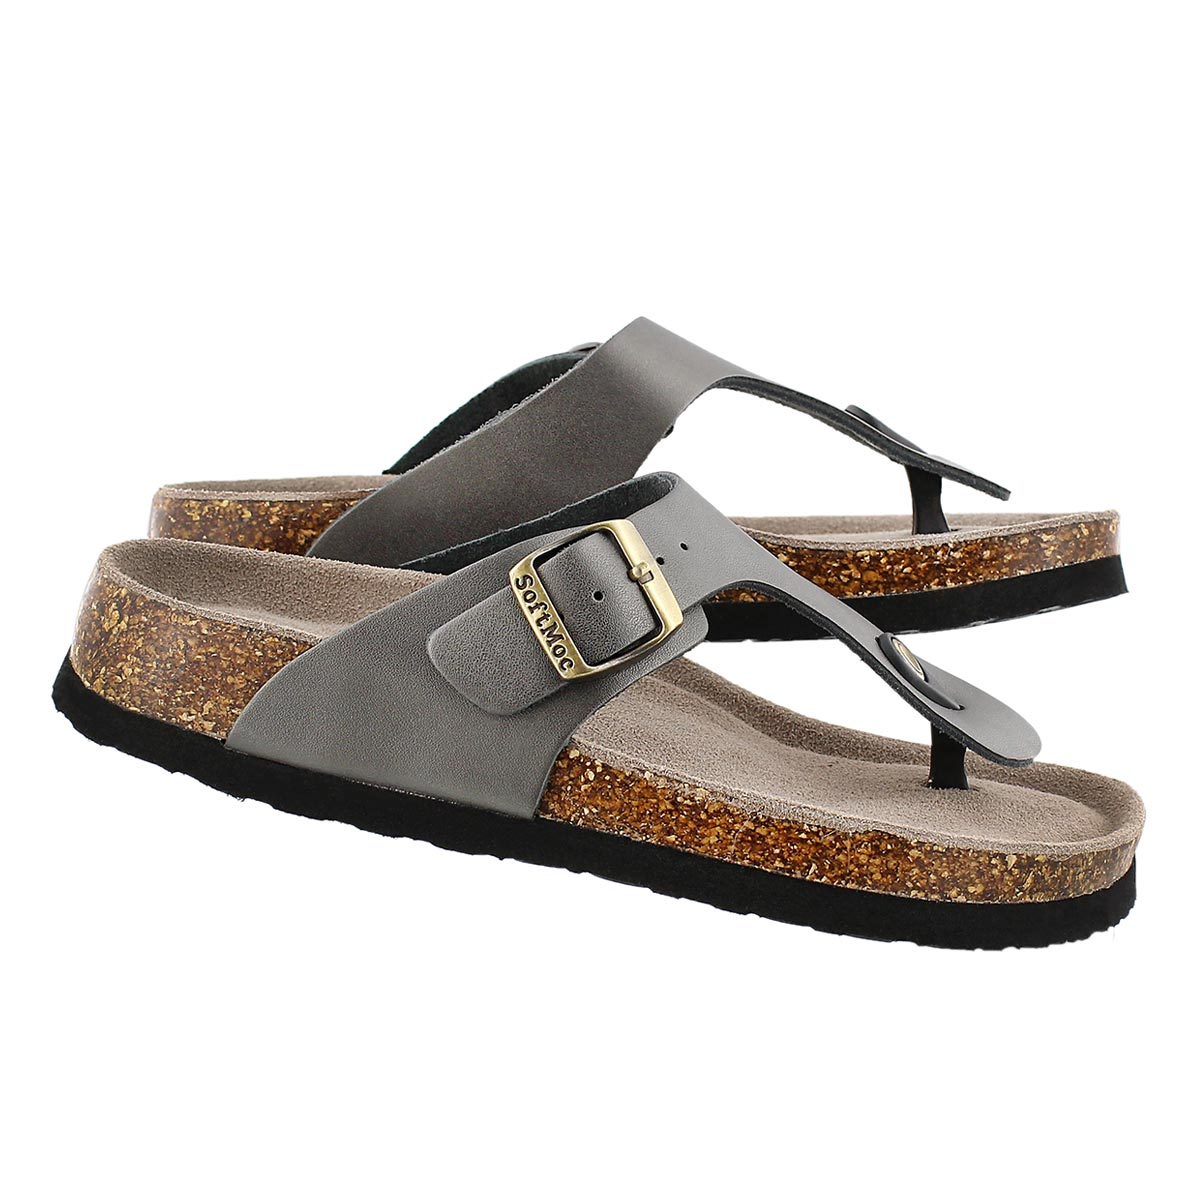 Lds Angy 4 pewter memory foam sandal